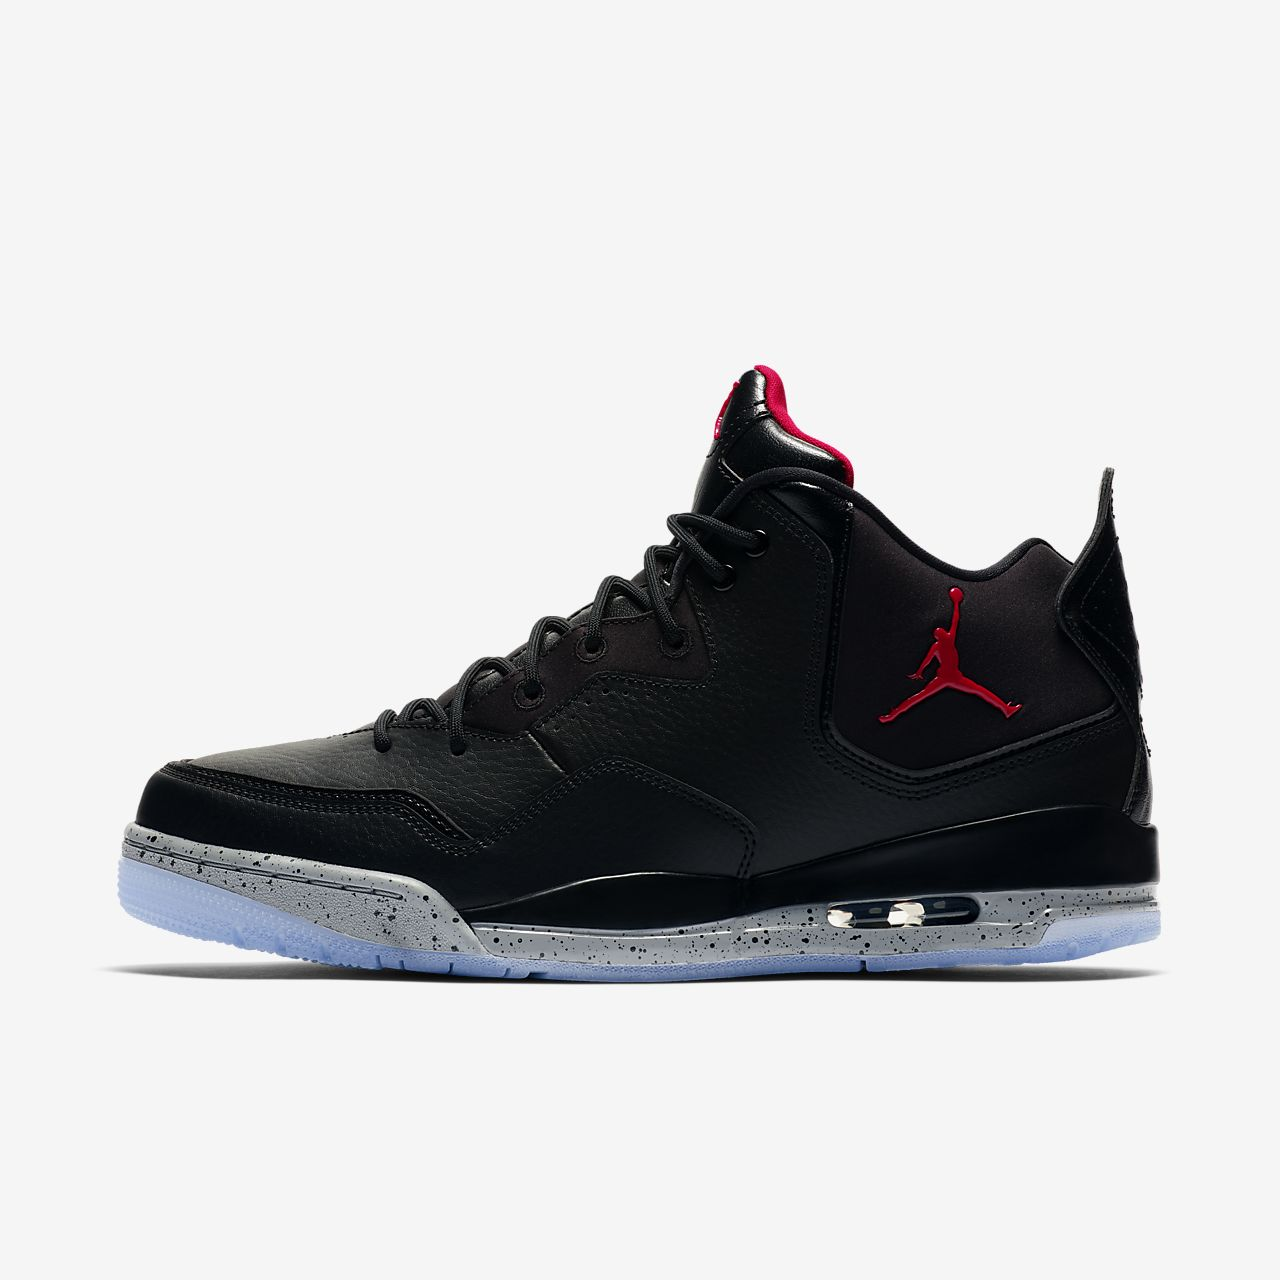 e1be580dfcc Jordan Courtside 23 Men s Shoe. Nike.com GB